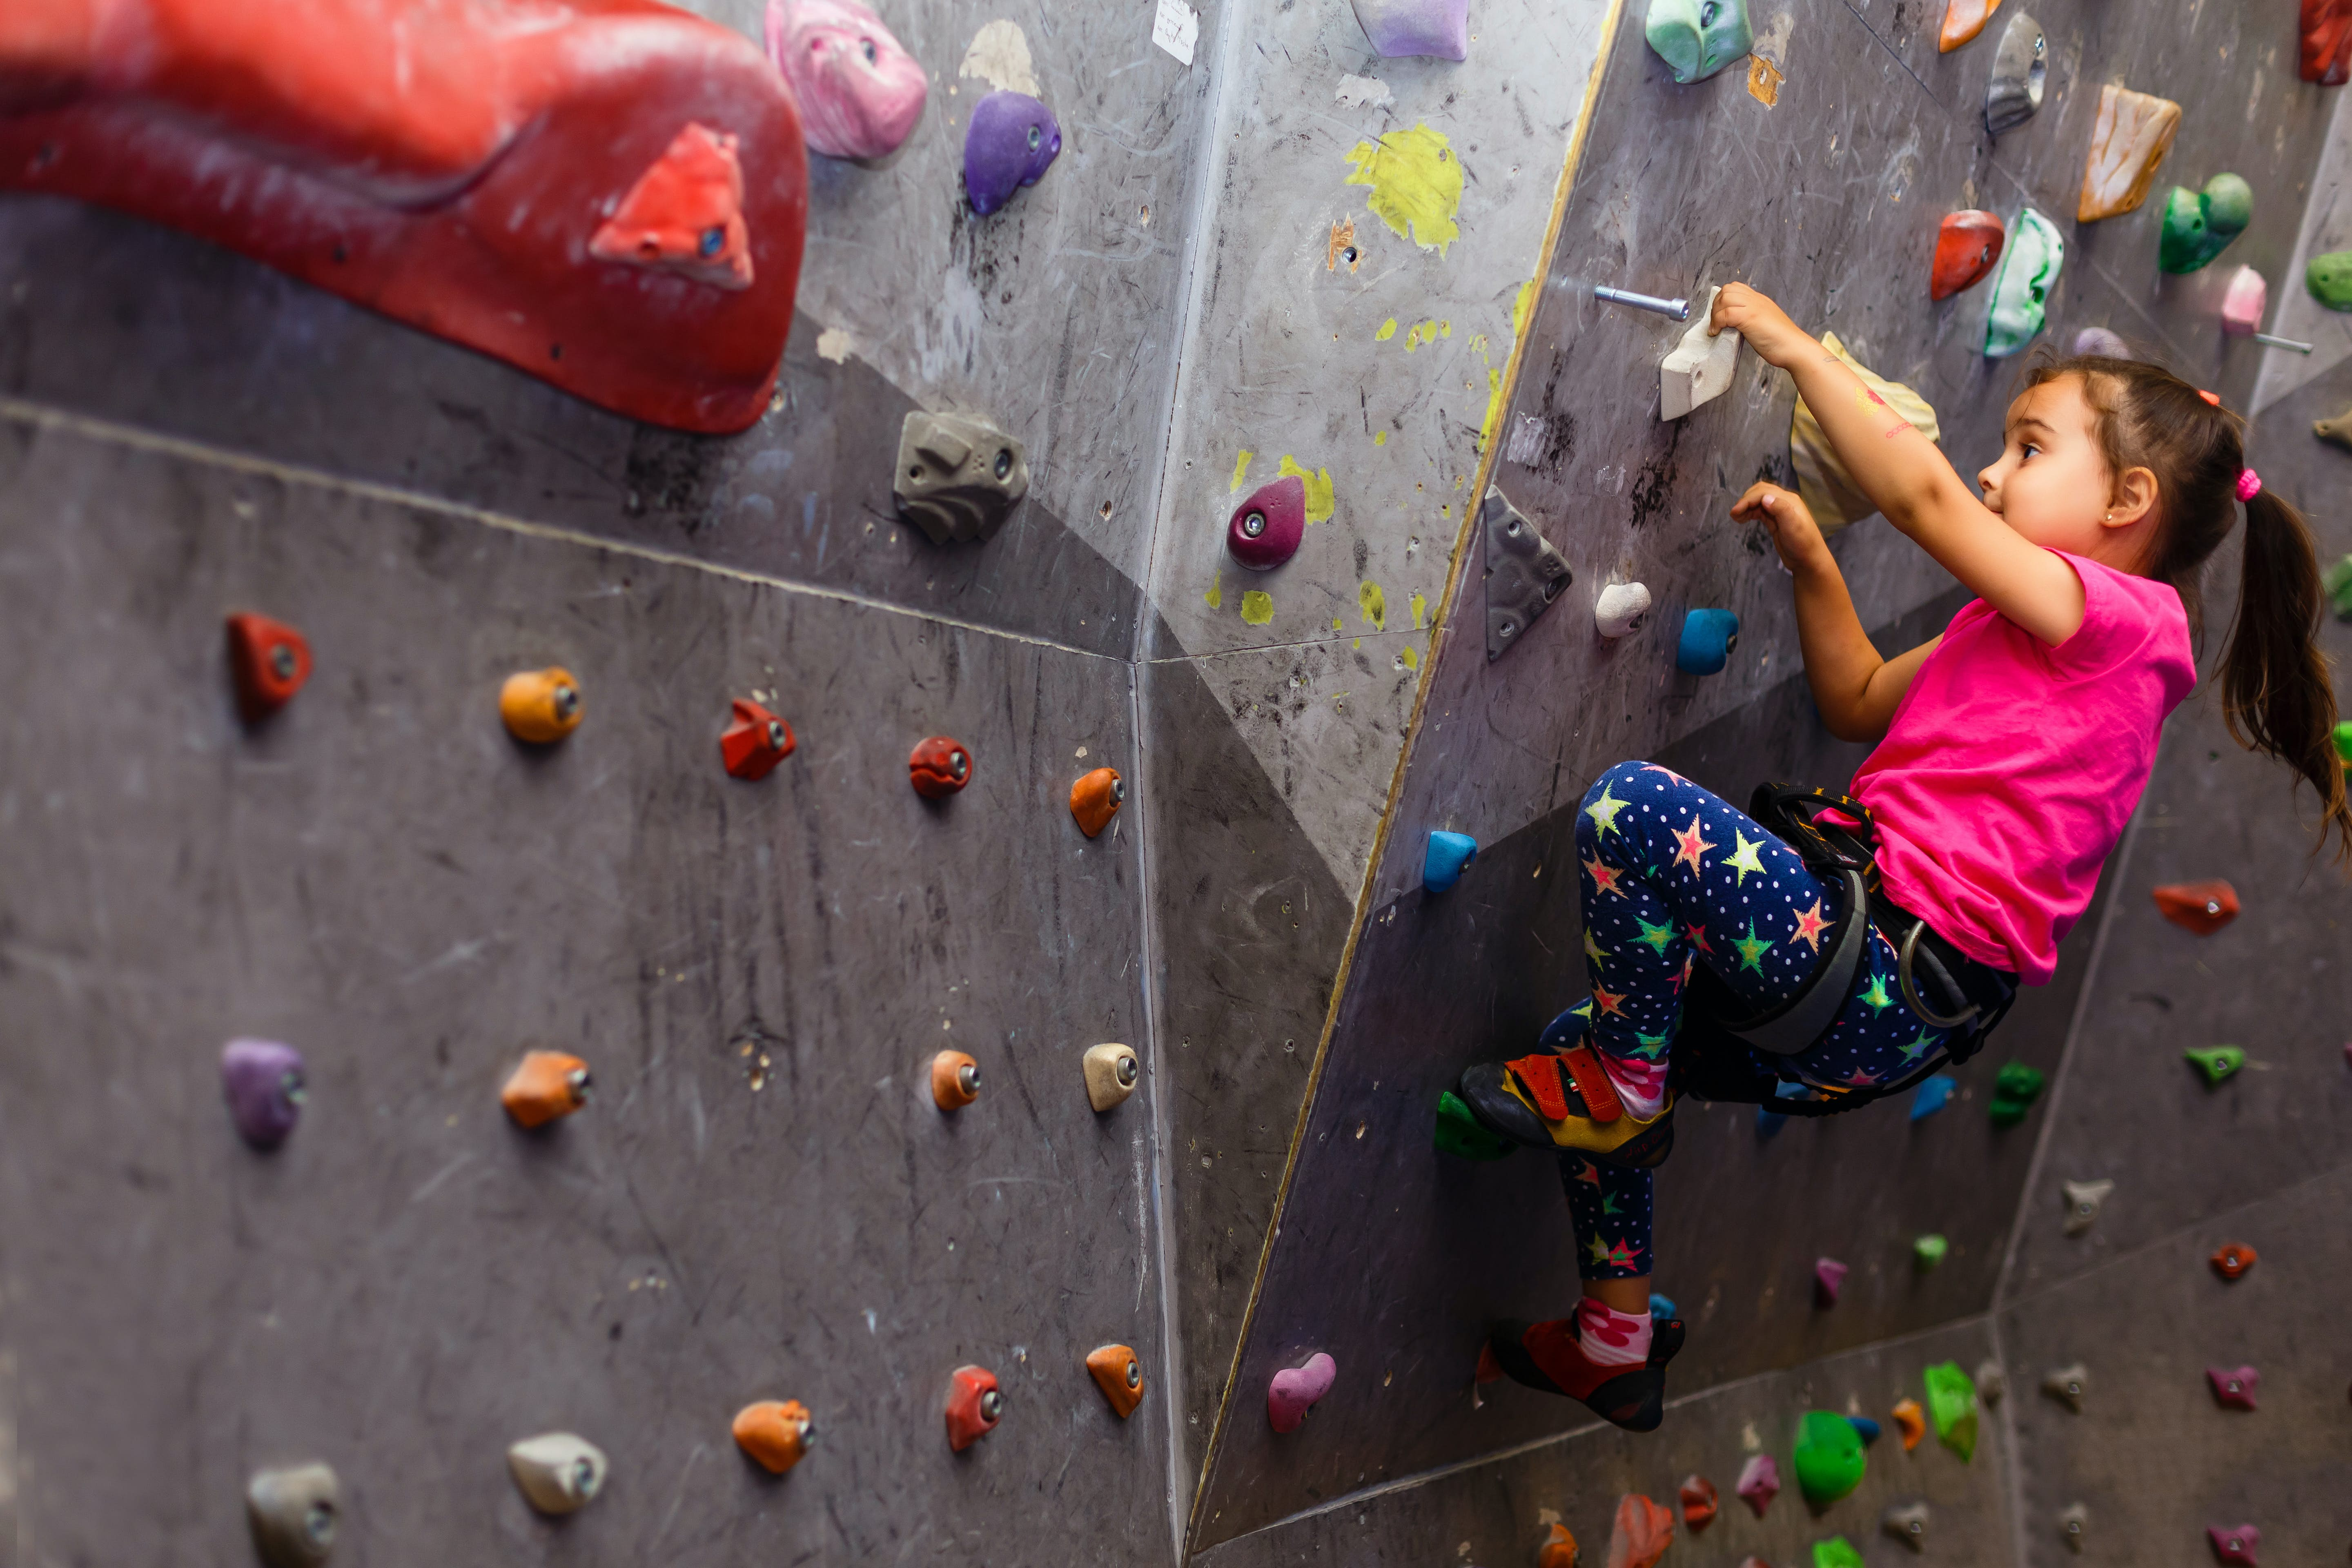 A young girl climbs on a bouldering wall in a climbing gym; kids outdoor adventures